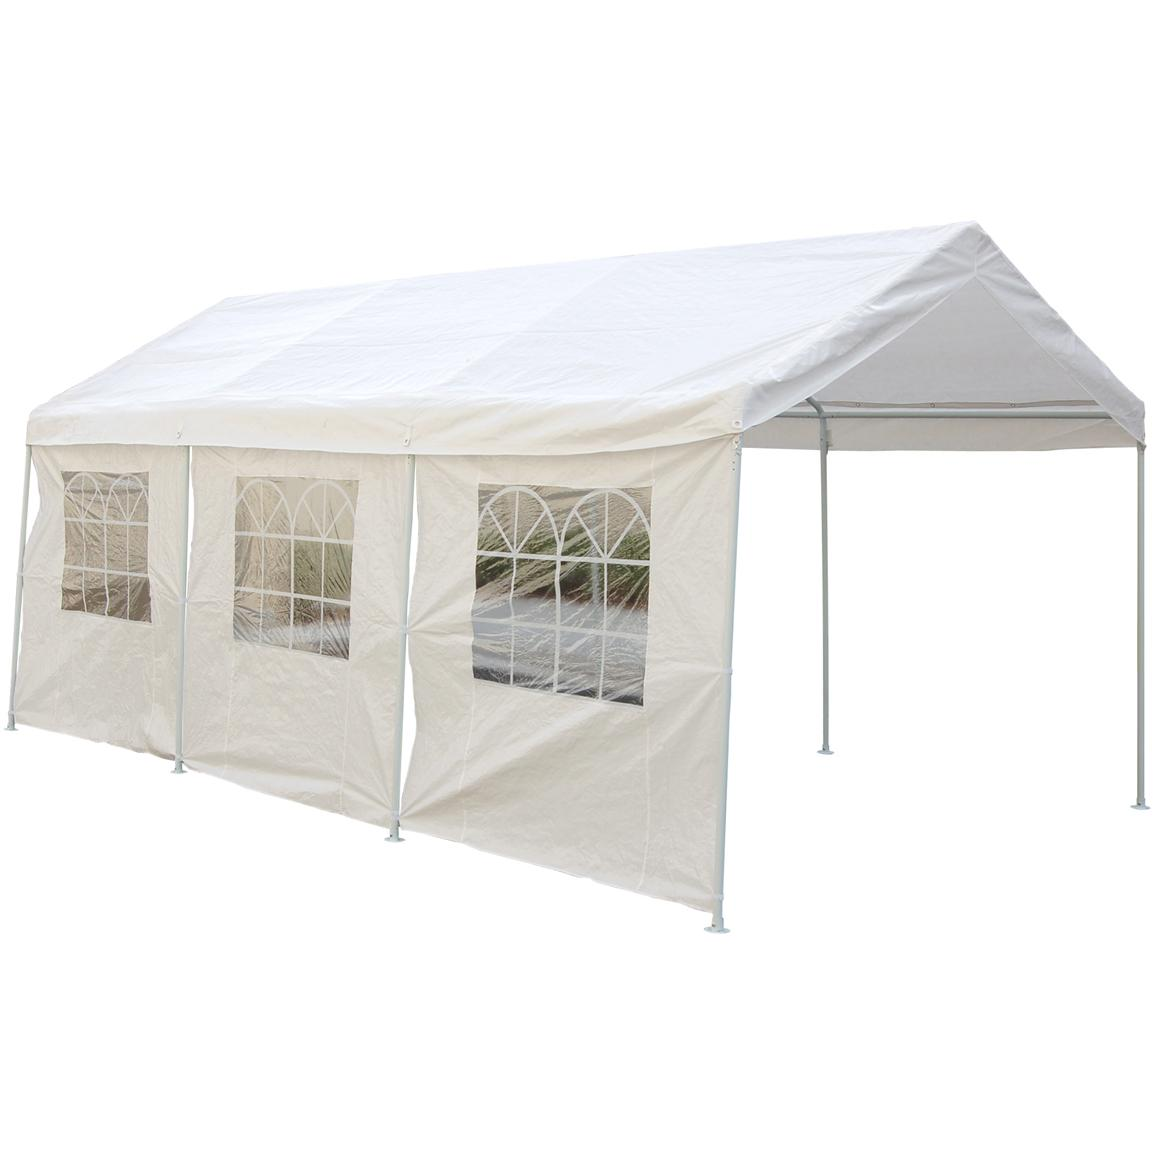 10x20' Canopy Carport with Side Walls